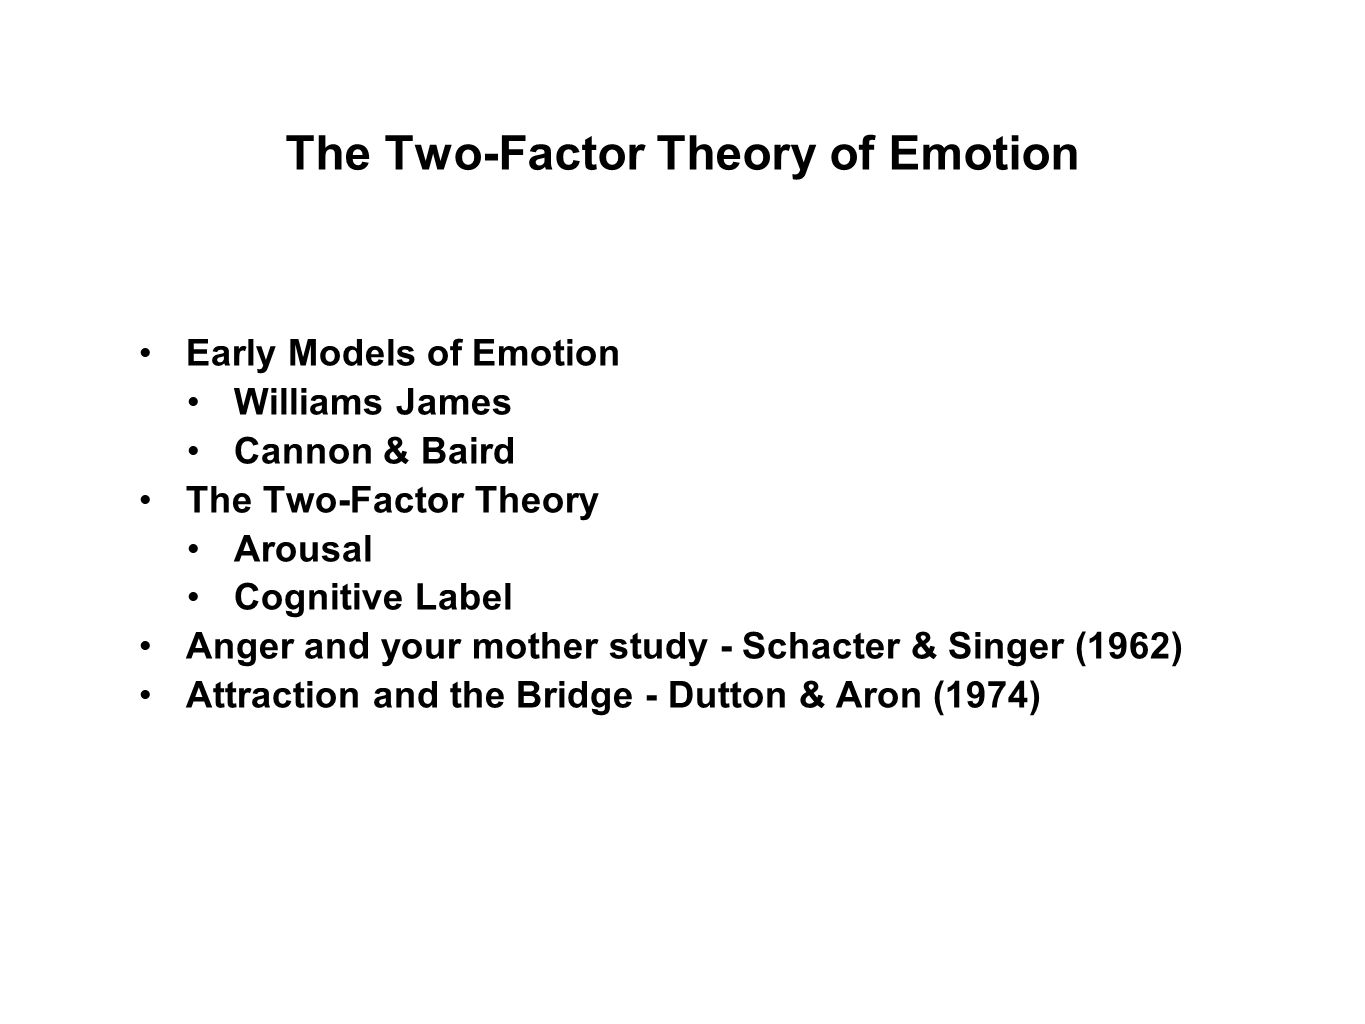 The Two-Factor Theory of Emotion